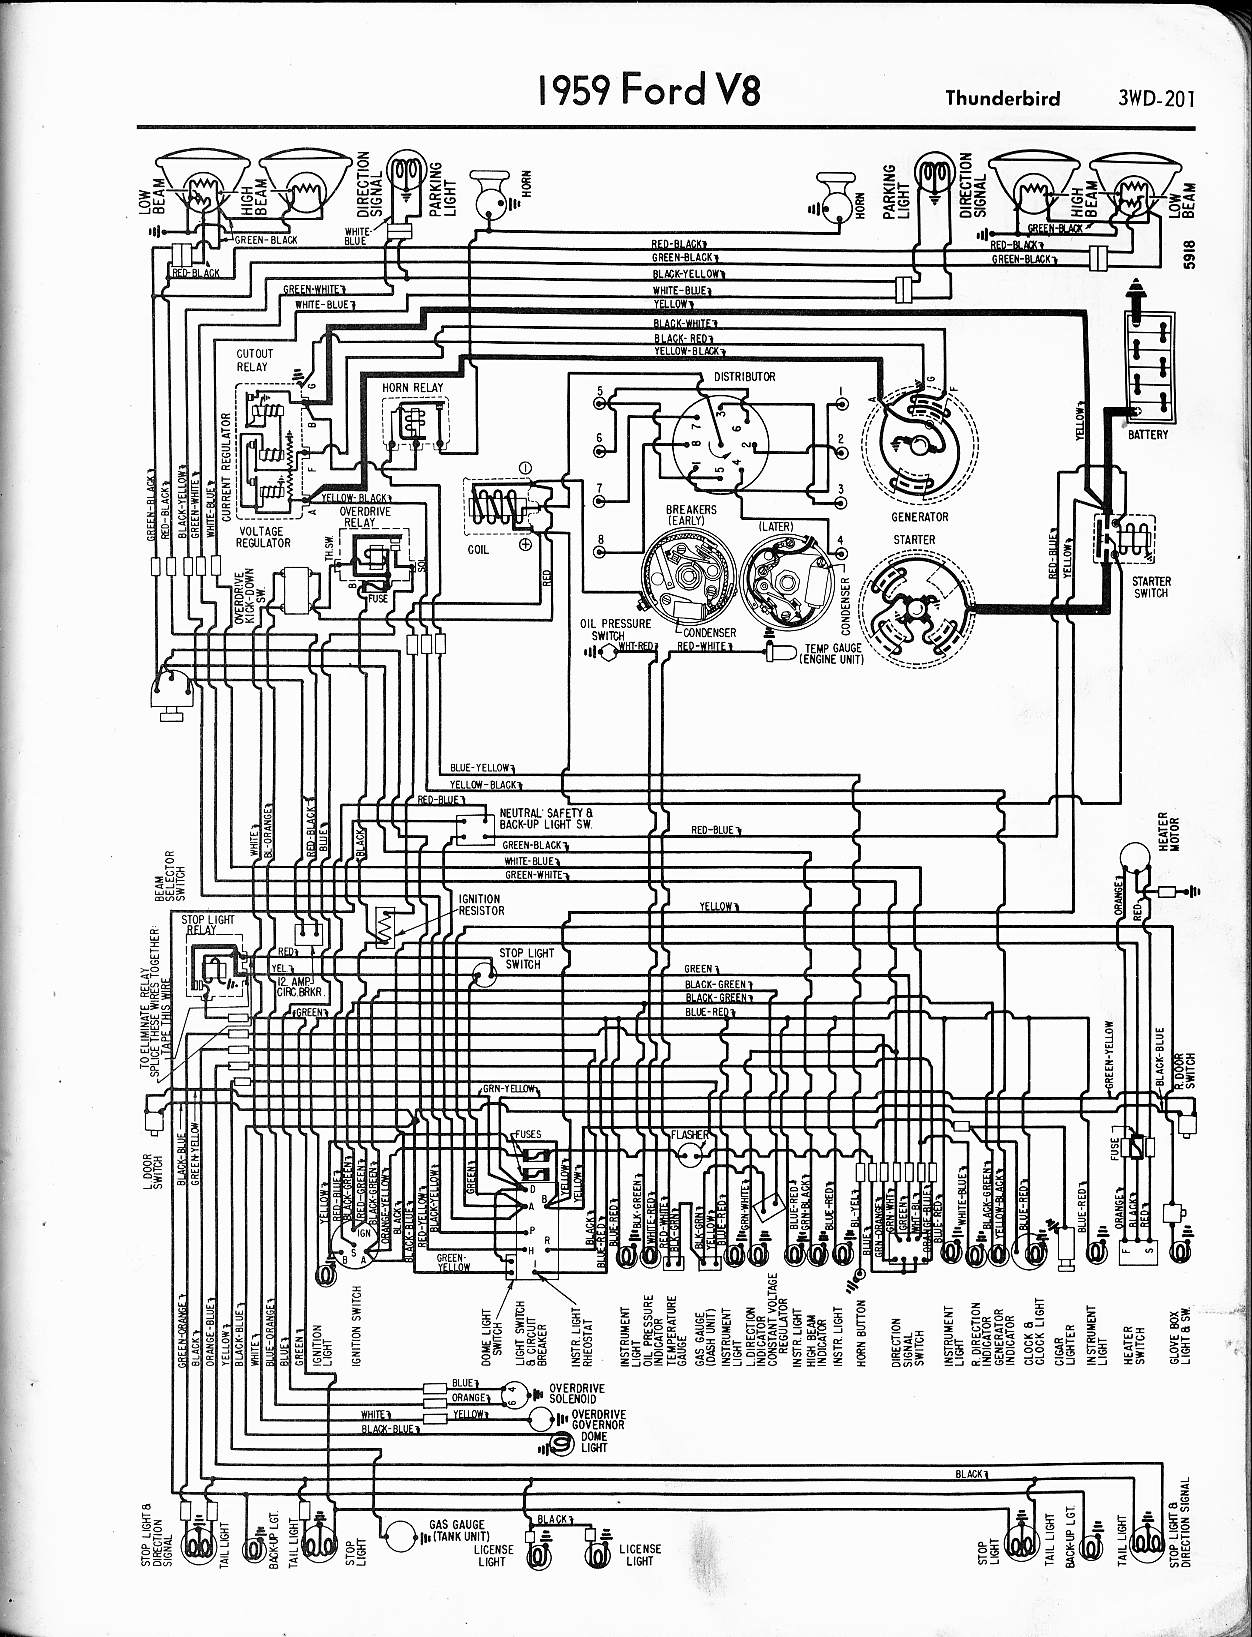 57 65 ford wiring diagrams rh oldcarmanualproject com 1956 Ford Victoria Wiring Diagram 1959 Ford Fairlane Wiring-Diagram